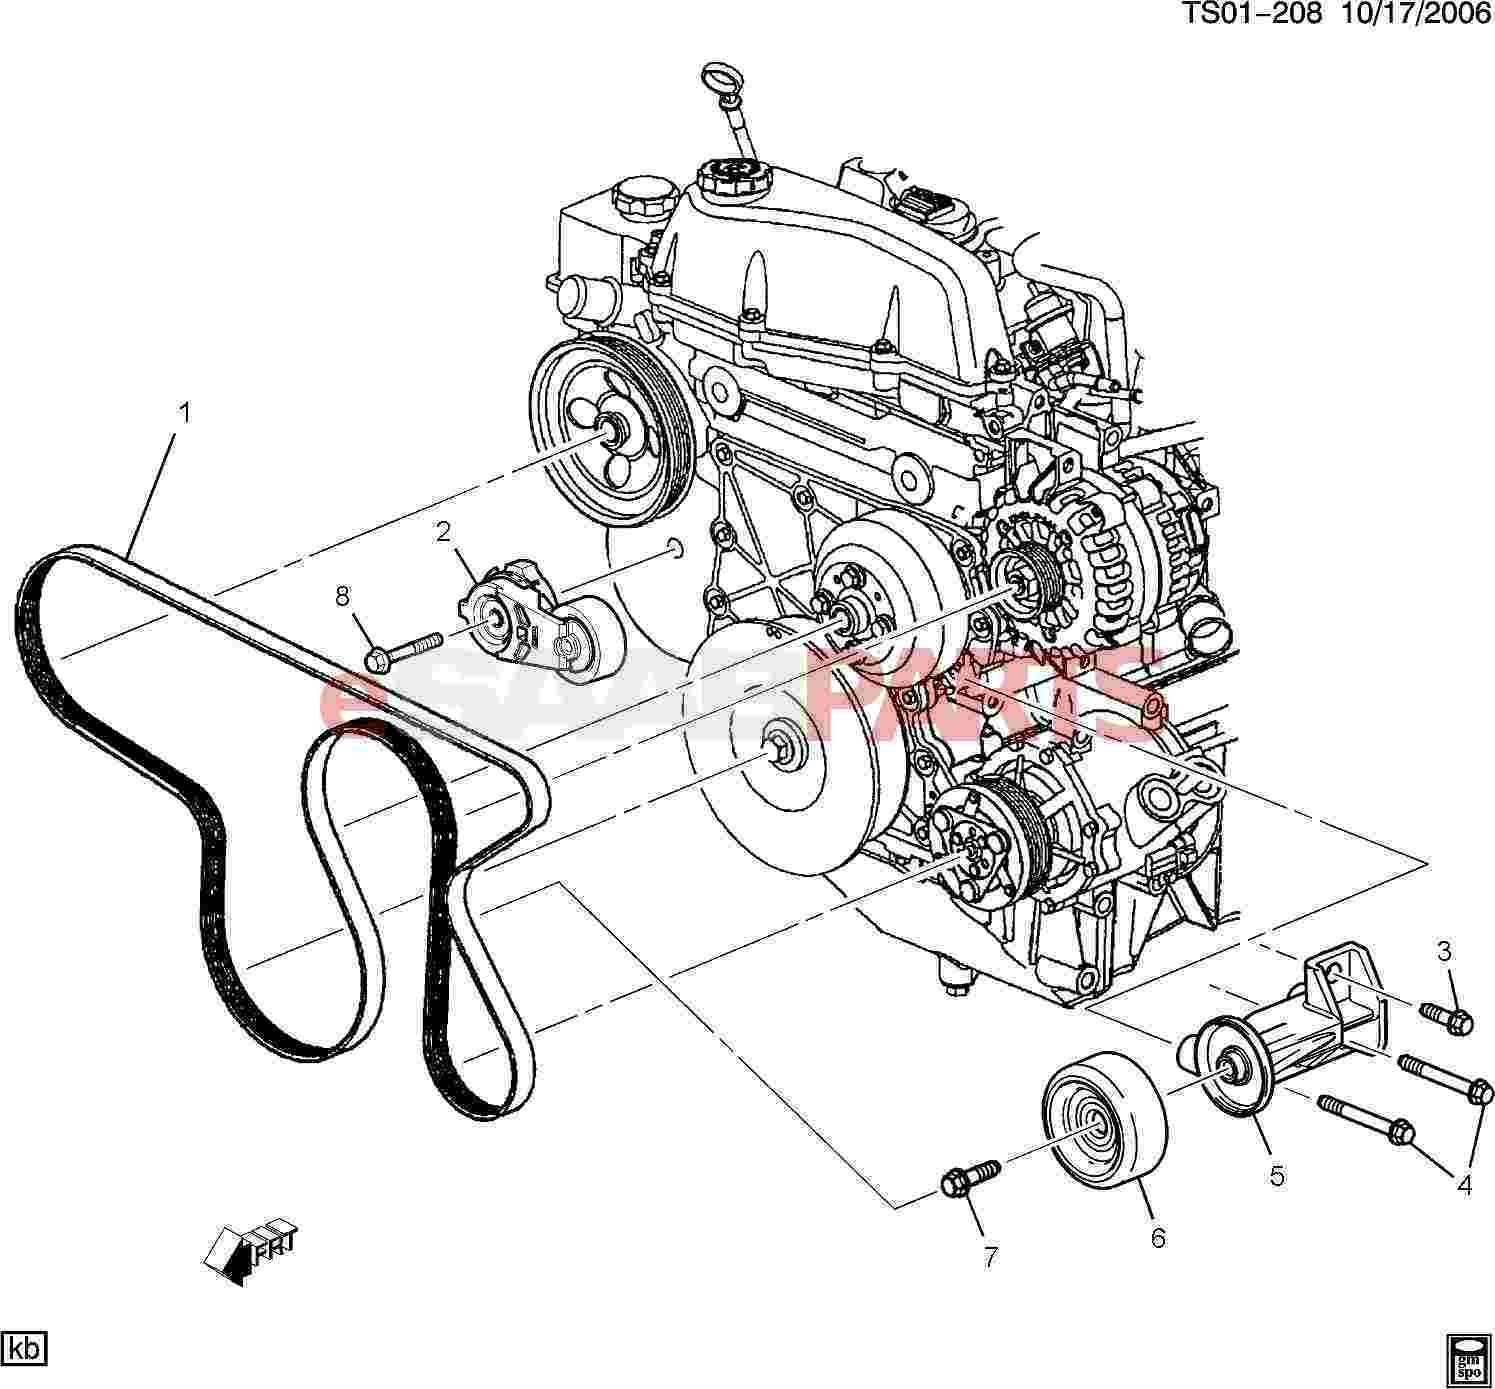 2006 chevy trailblazer parts diagram wiring diagram source 2014 Chevy Cruze Engine Diagram